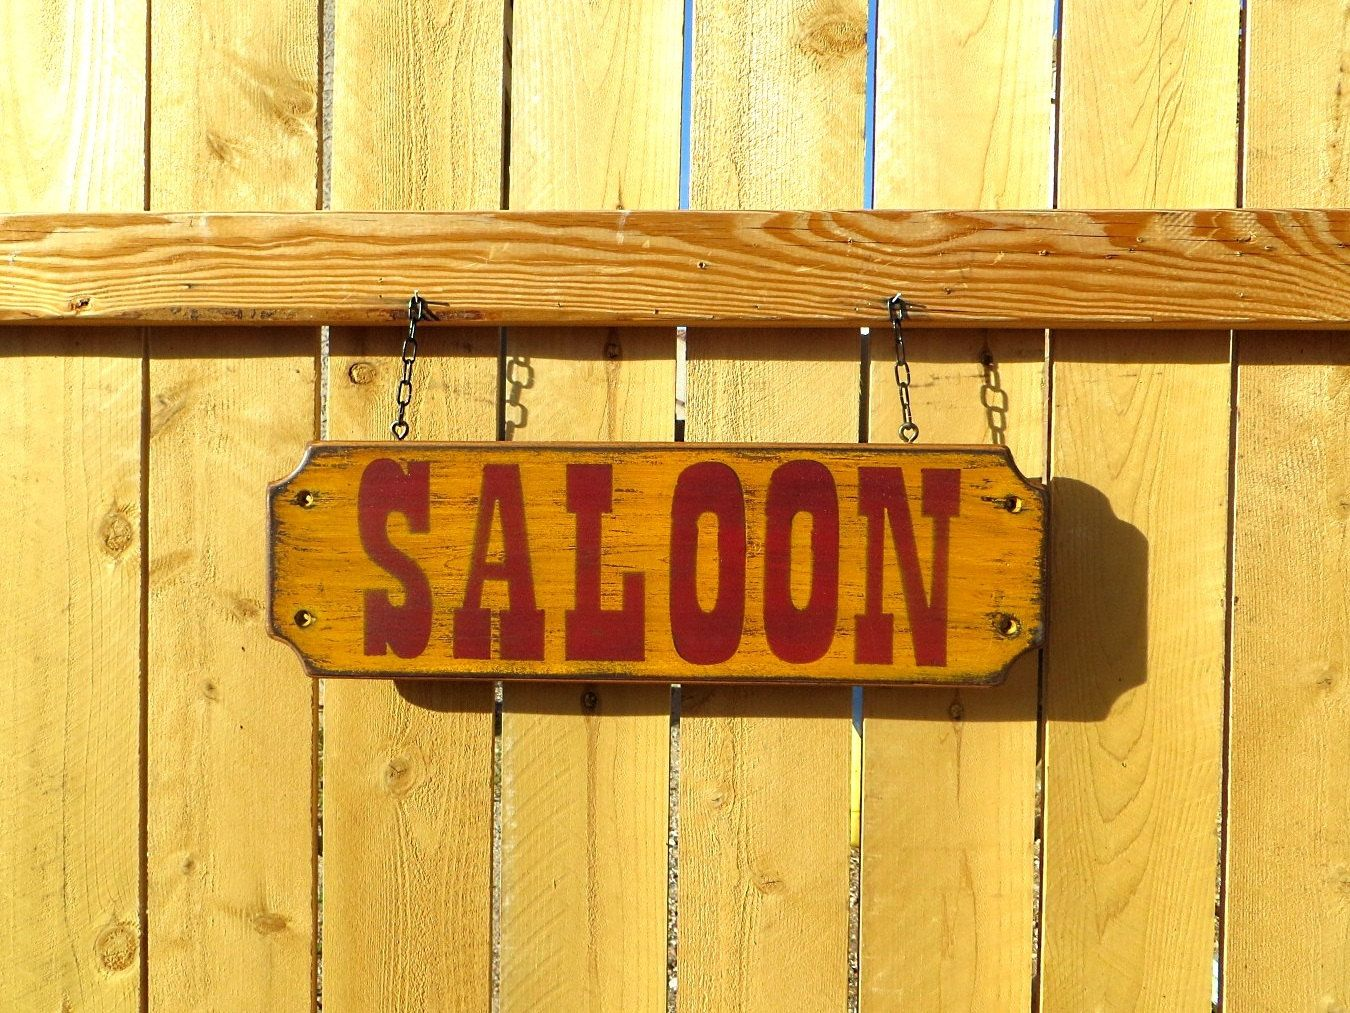 SALOON SIGN, Rustic Old West Western Wall Decor Wall Hanging, Beer ...